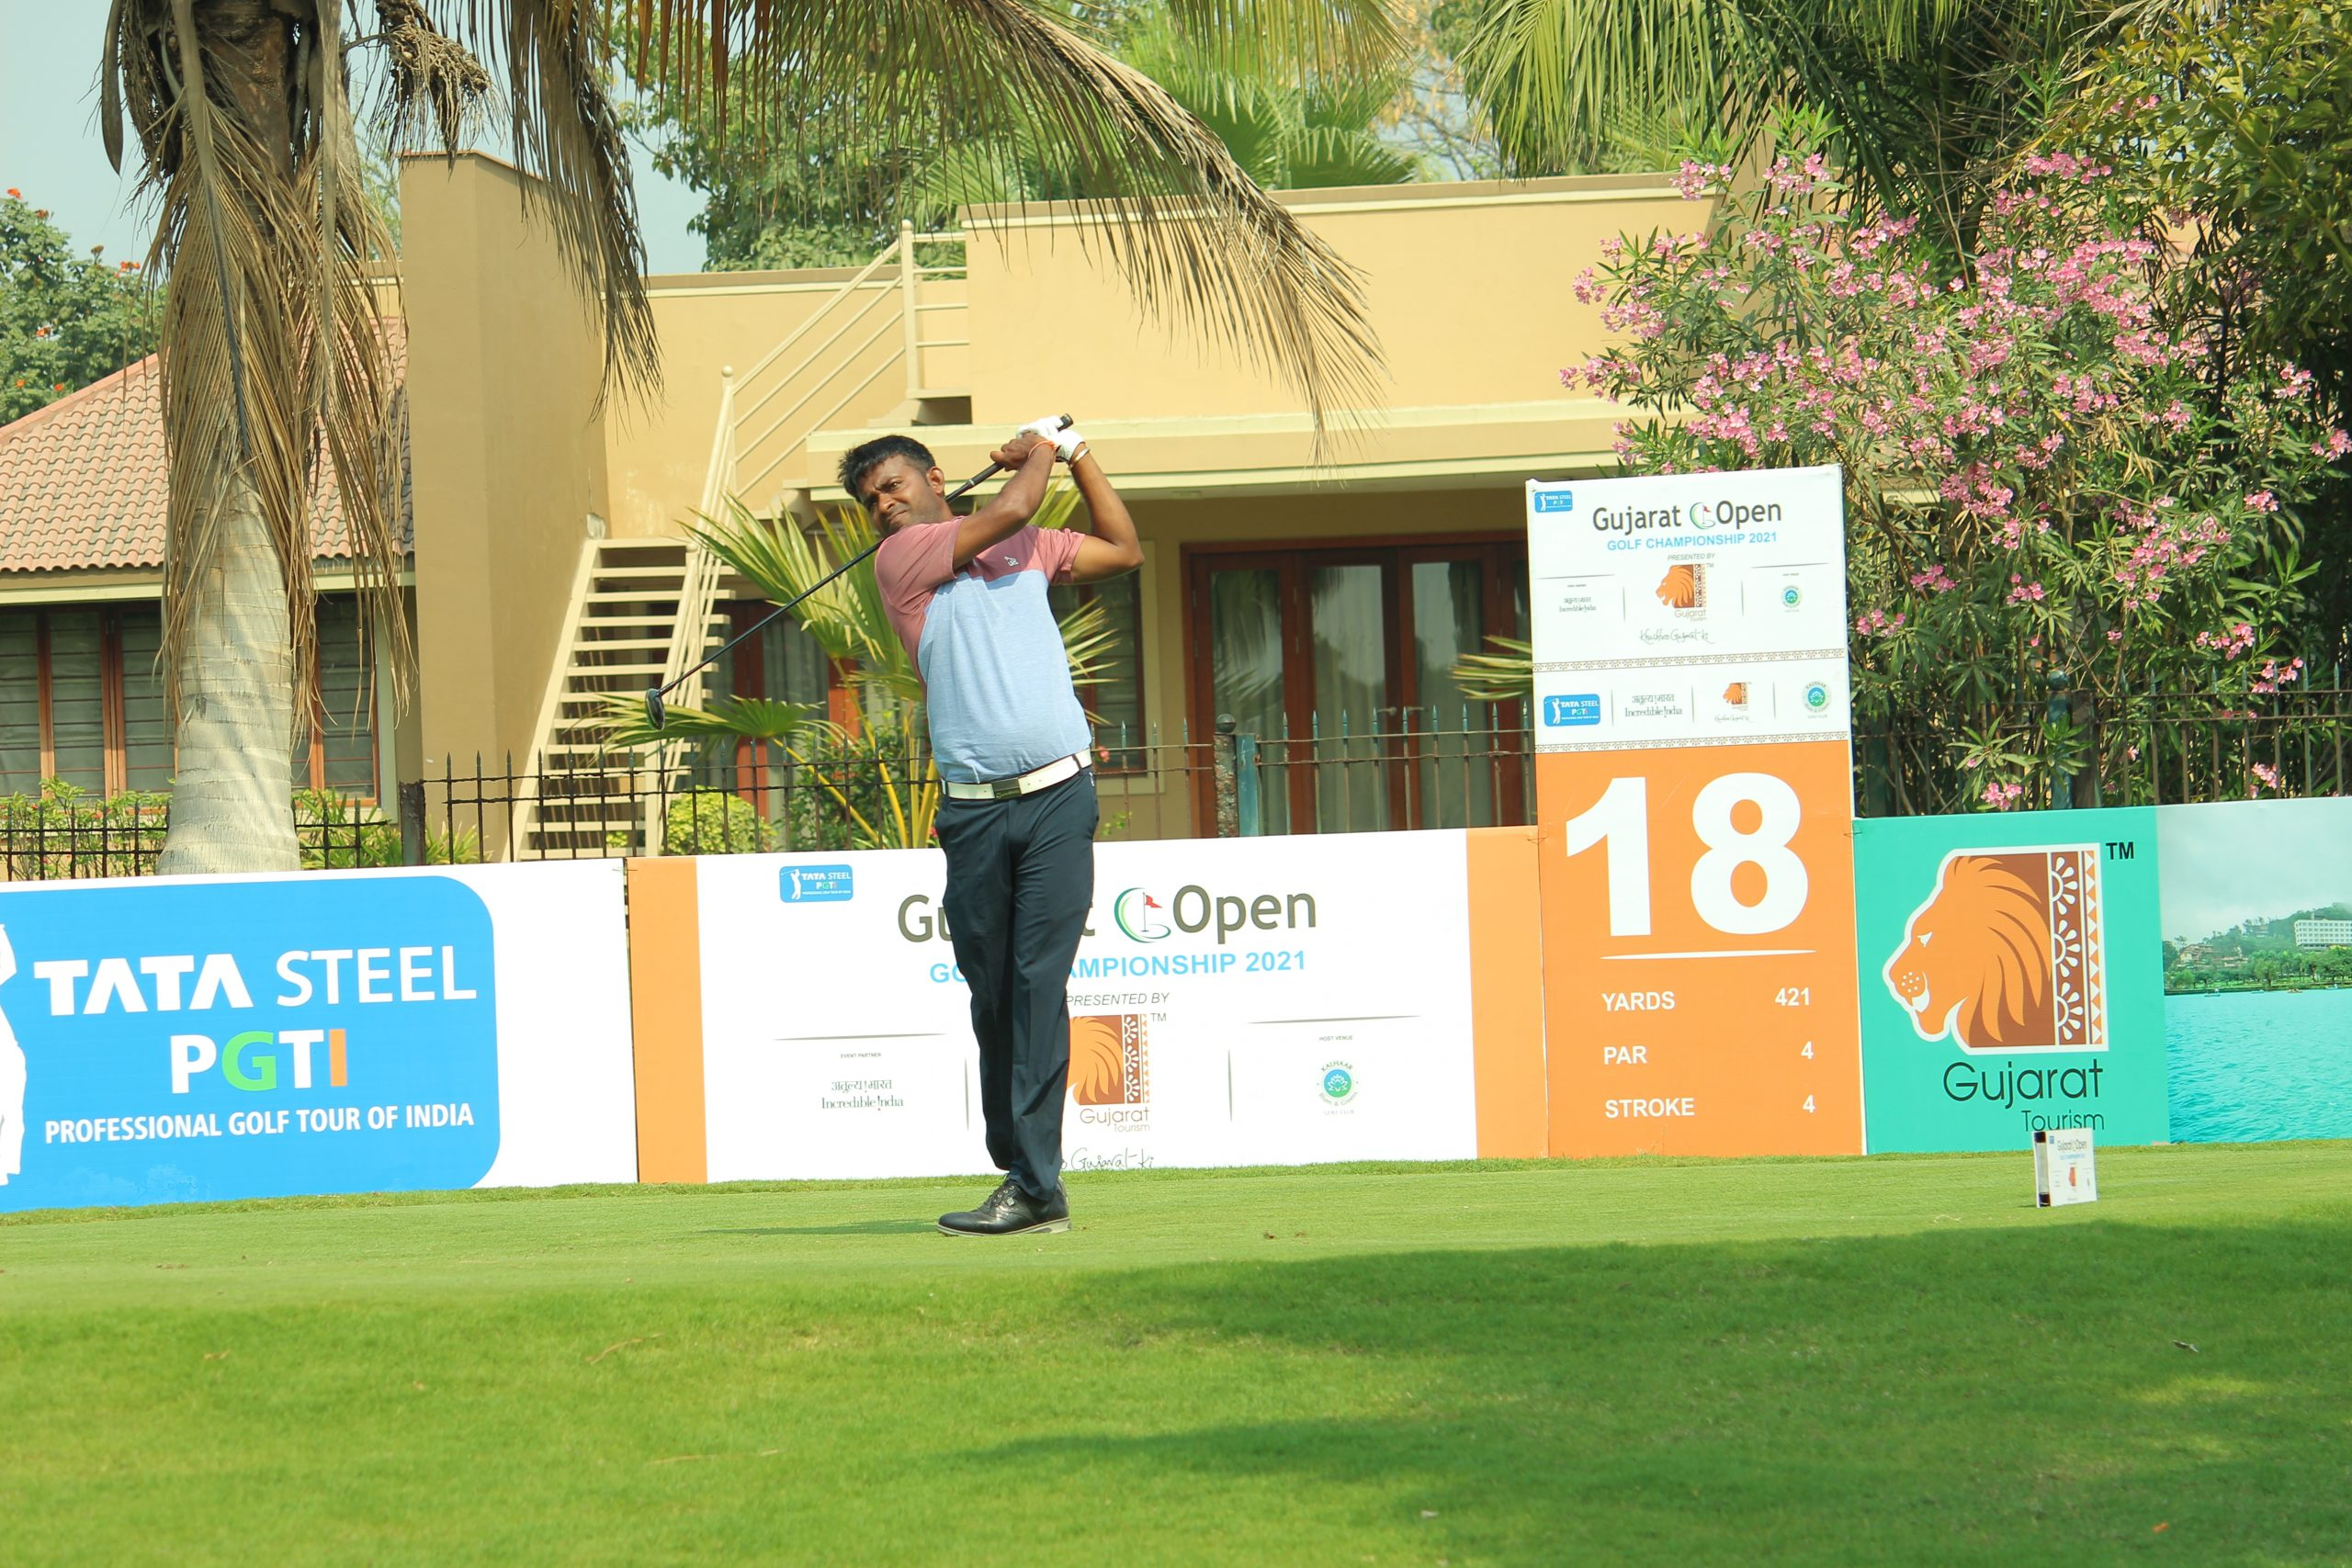 Om Prakash takes 5-shot lead after Round 3 at Gujarat Open; Lohan moves to 2nd